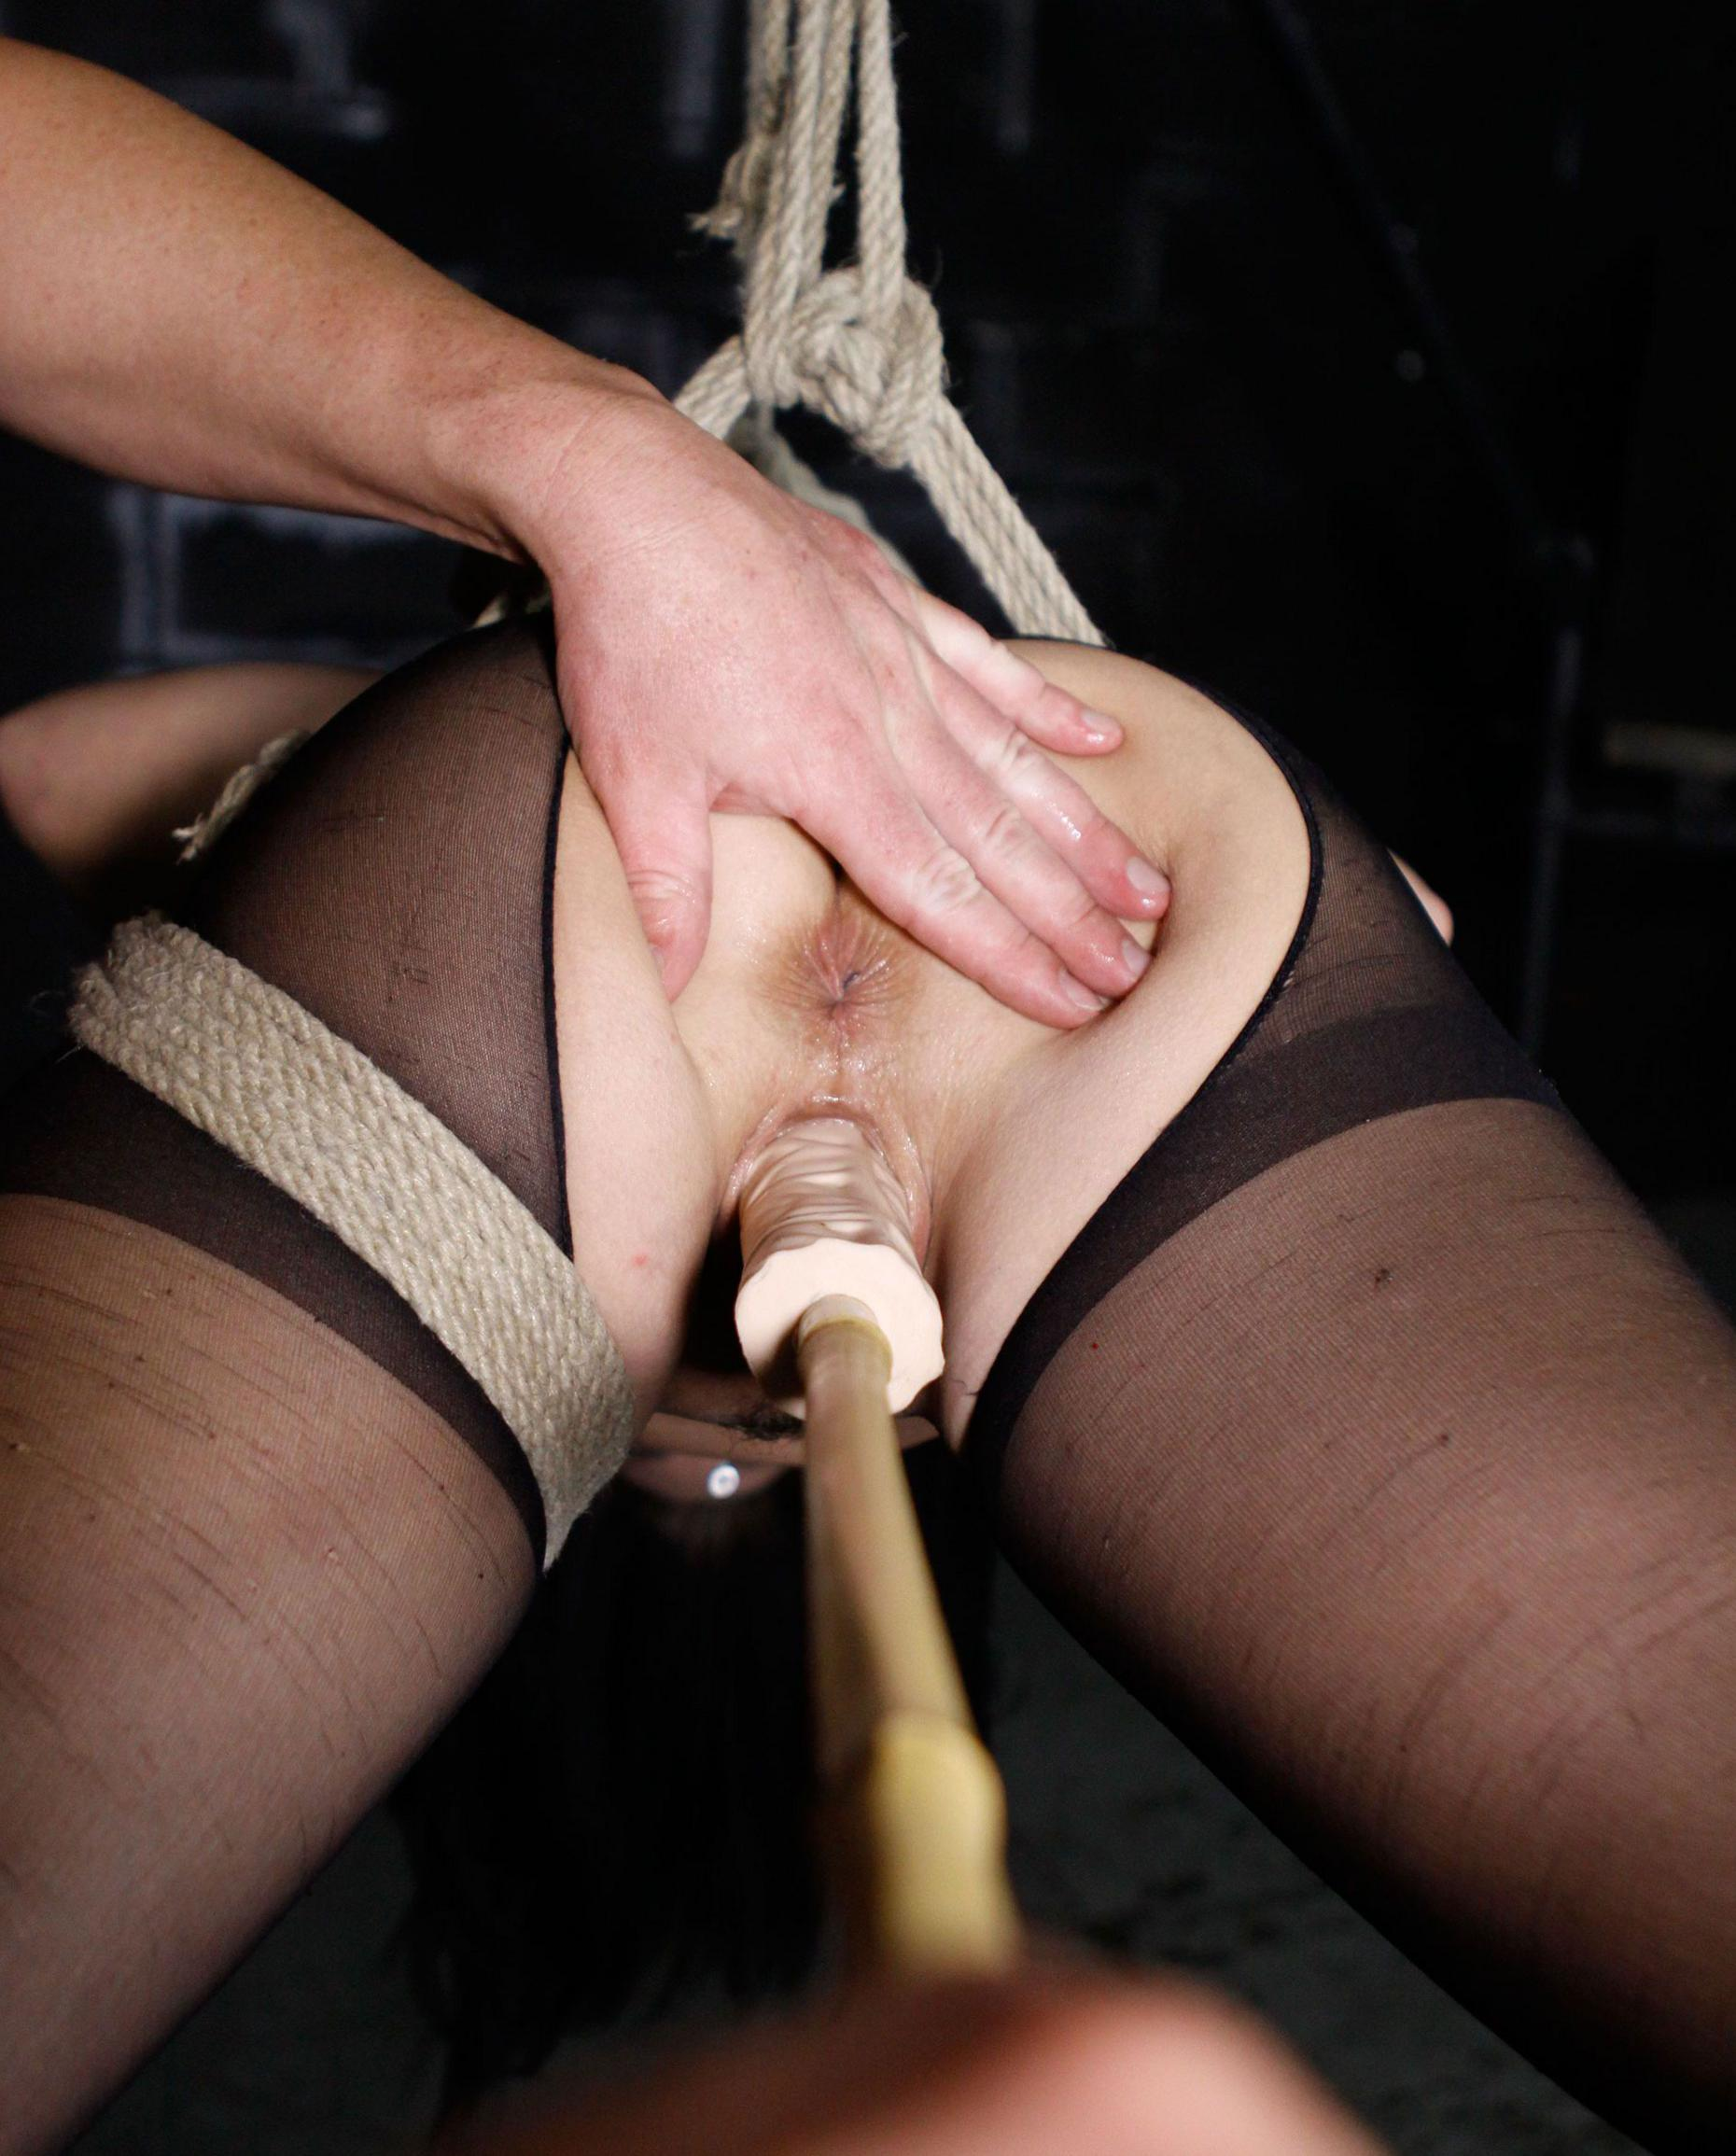 Bondage mature porn love your